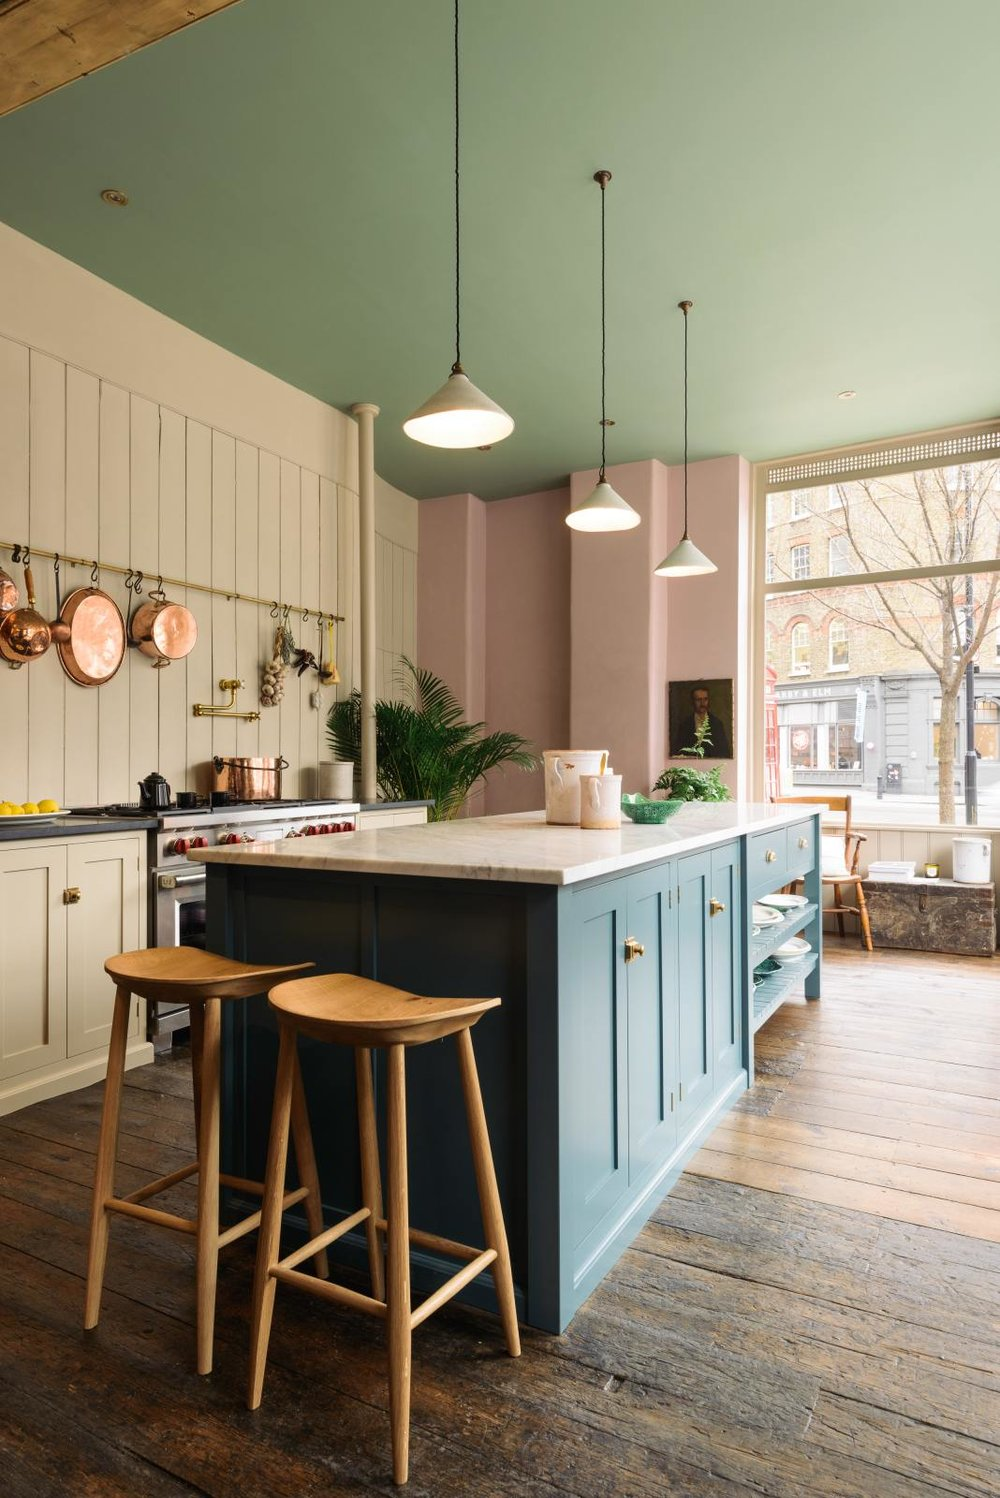 thenordroom-colourfulkitchen15.jpg